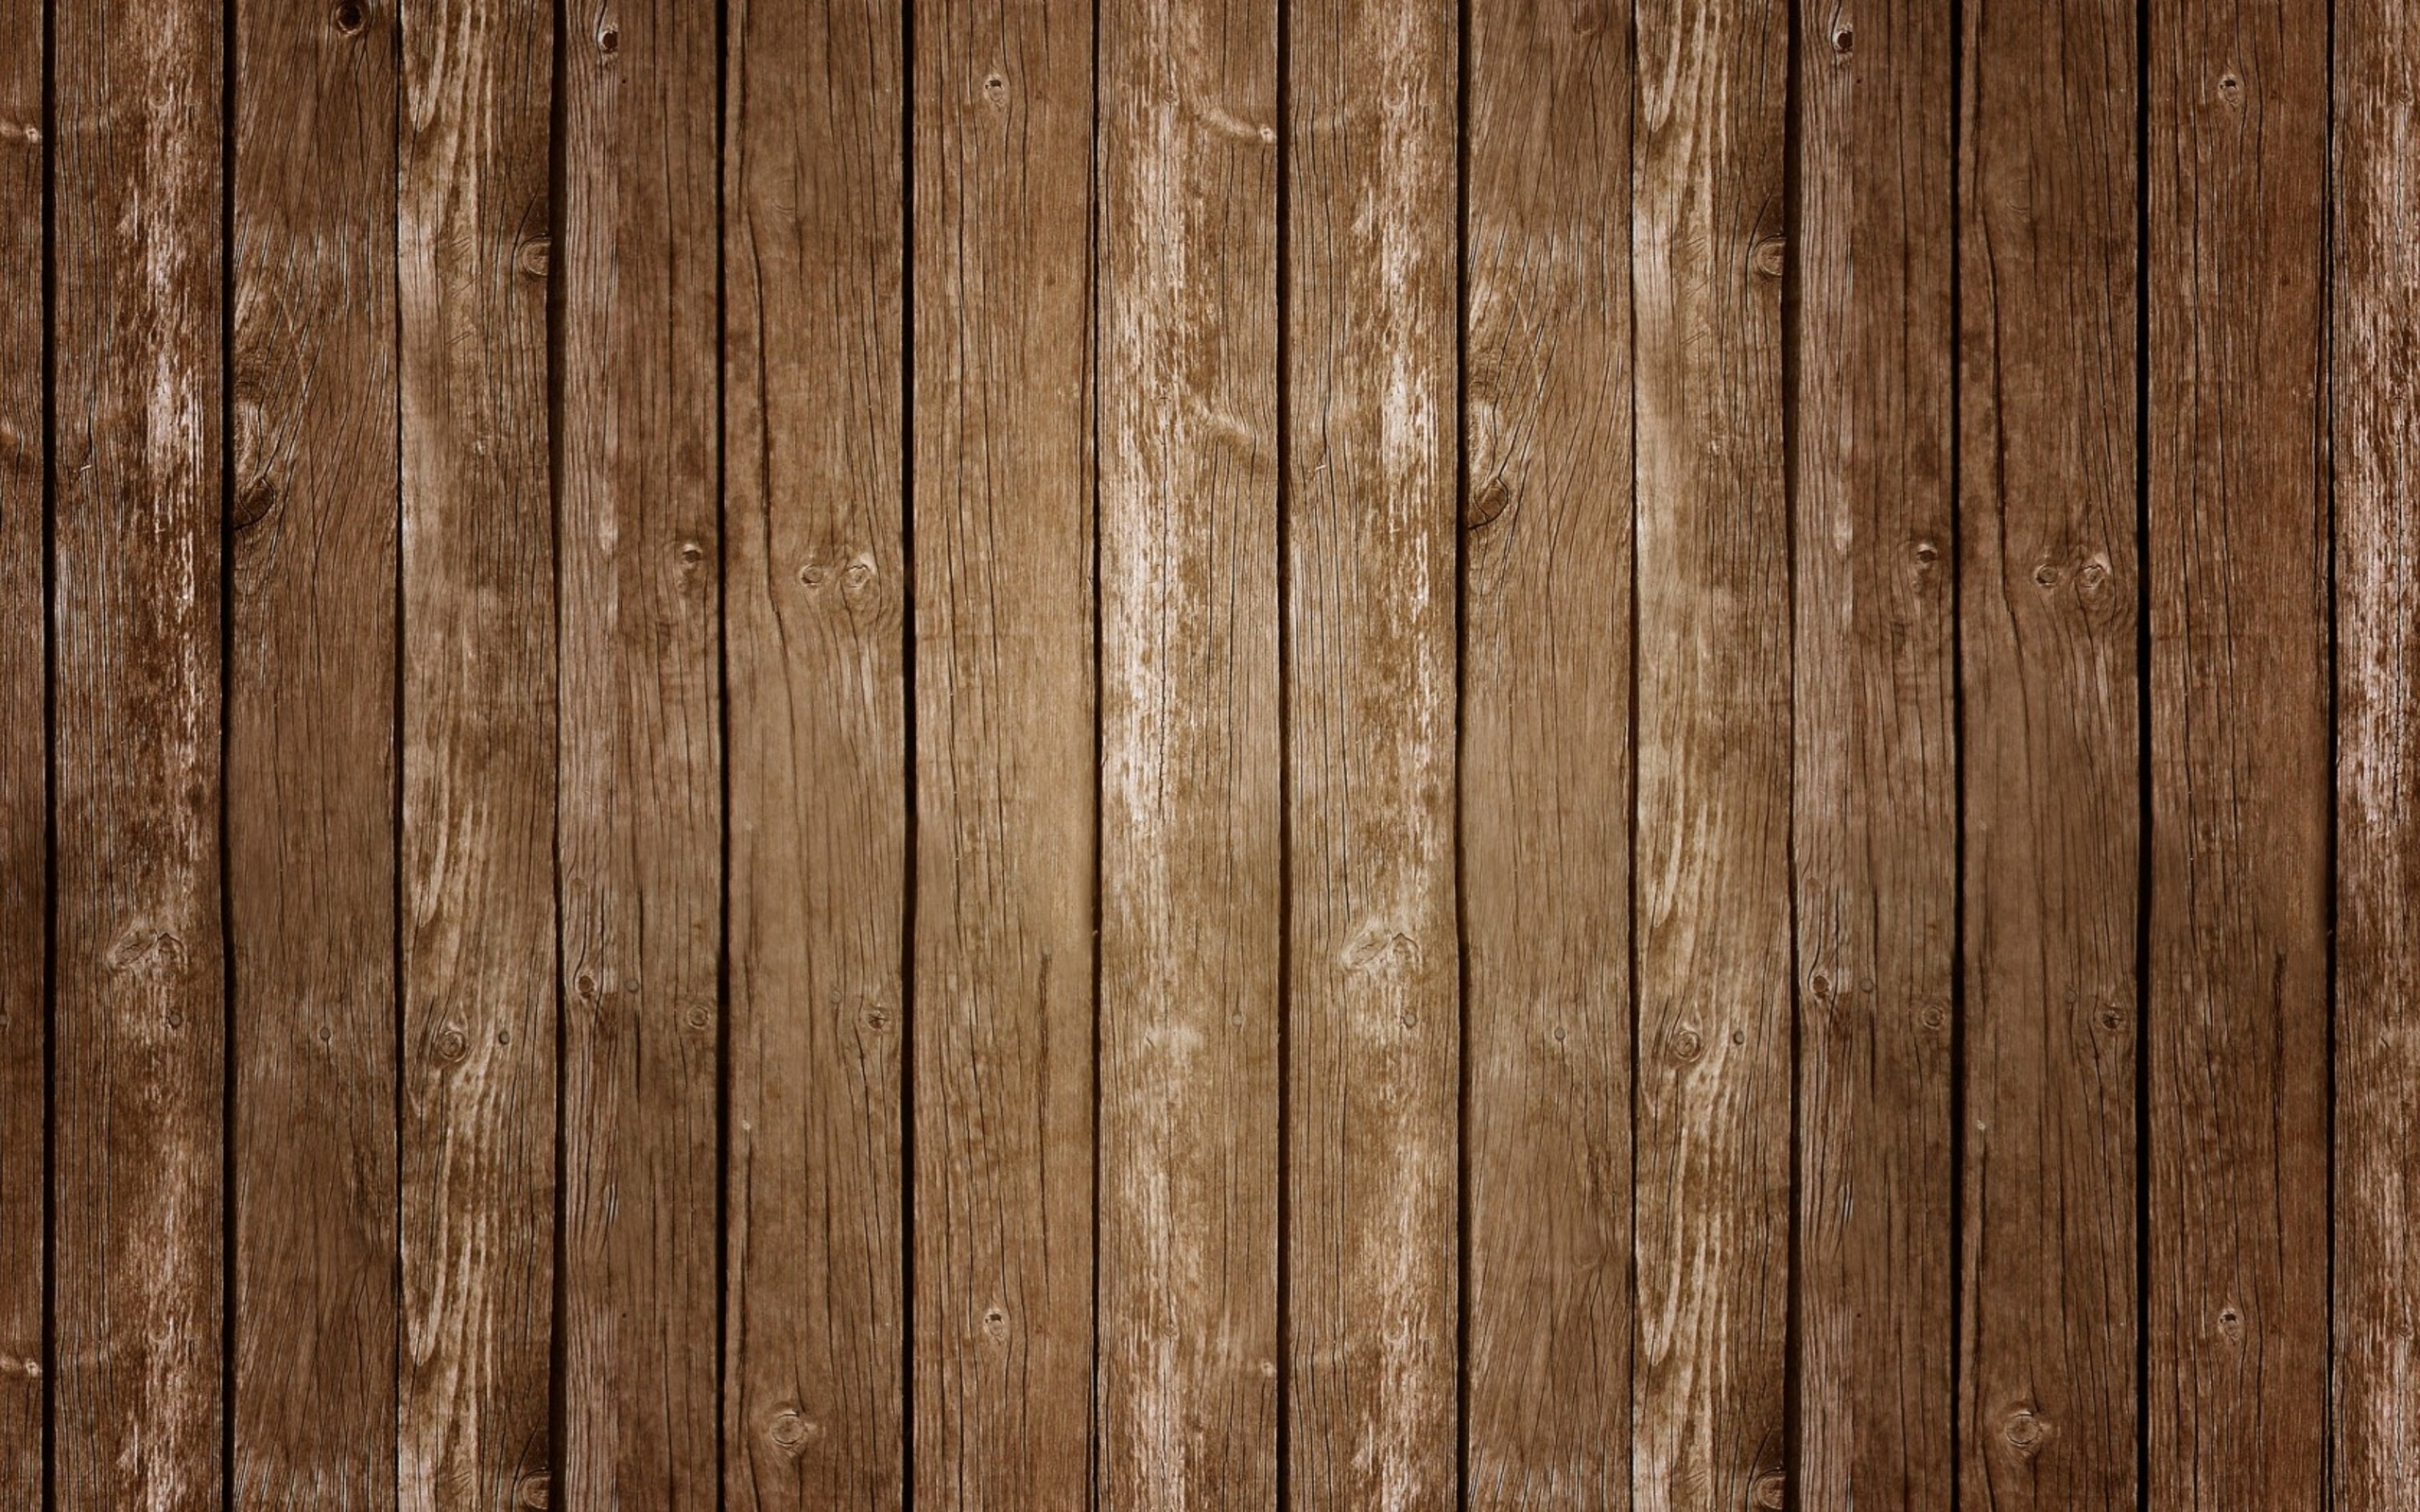 Android wallpaper knock on wood for Wood wallpaper for walls